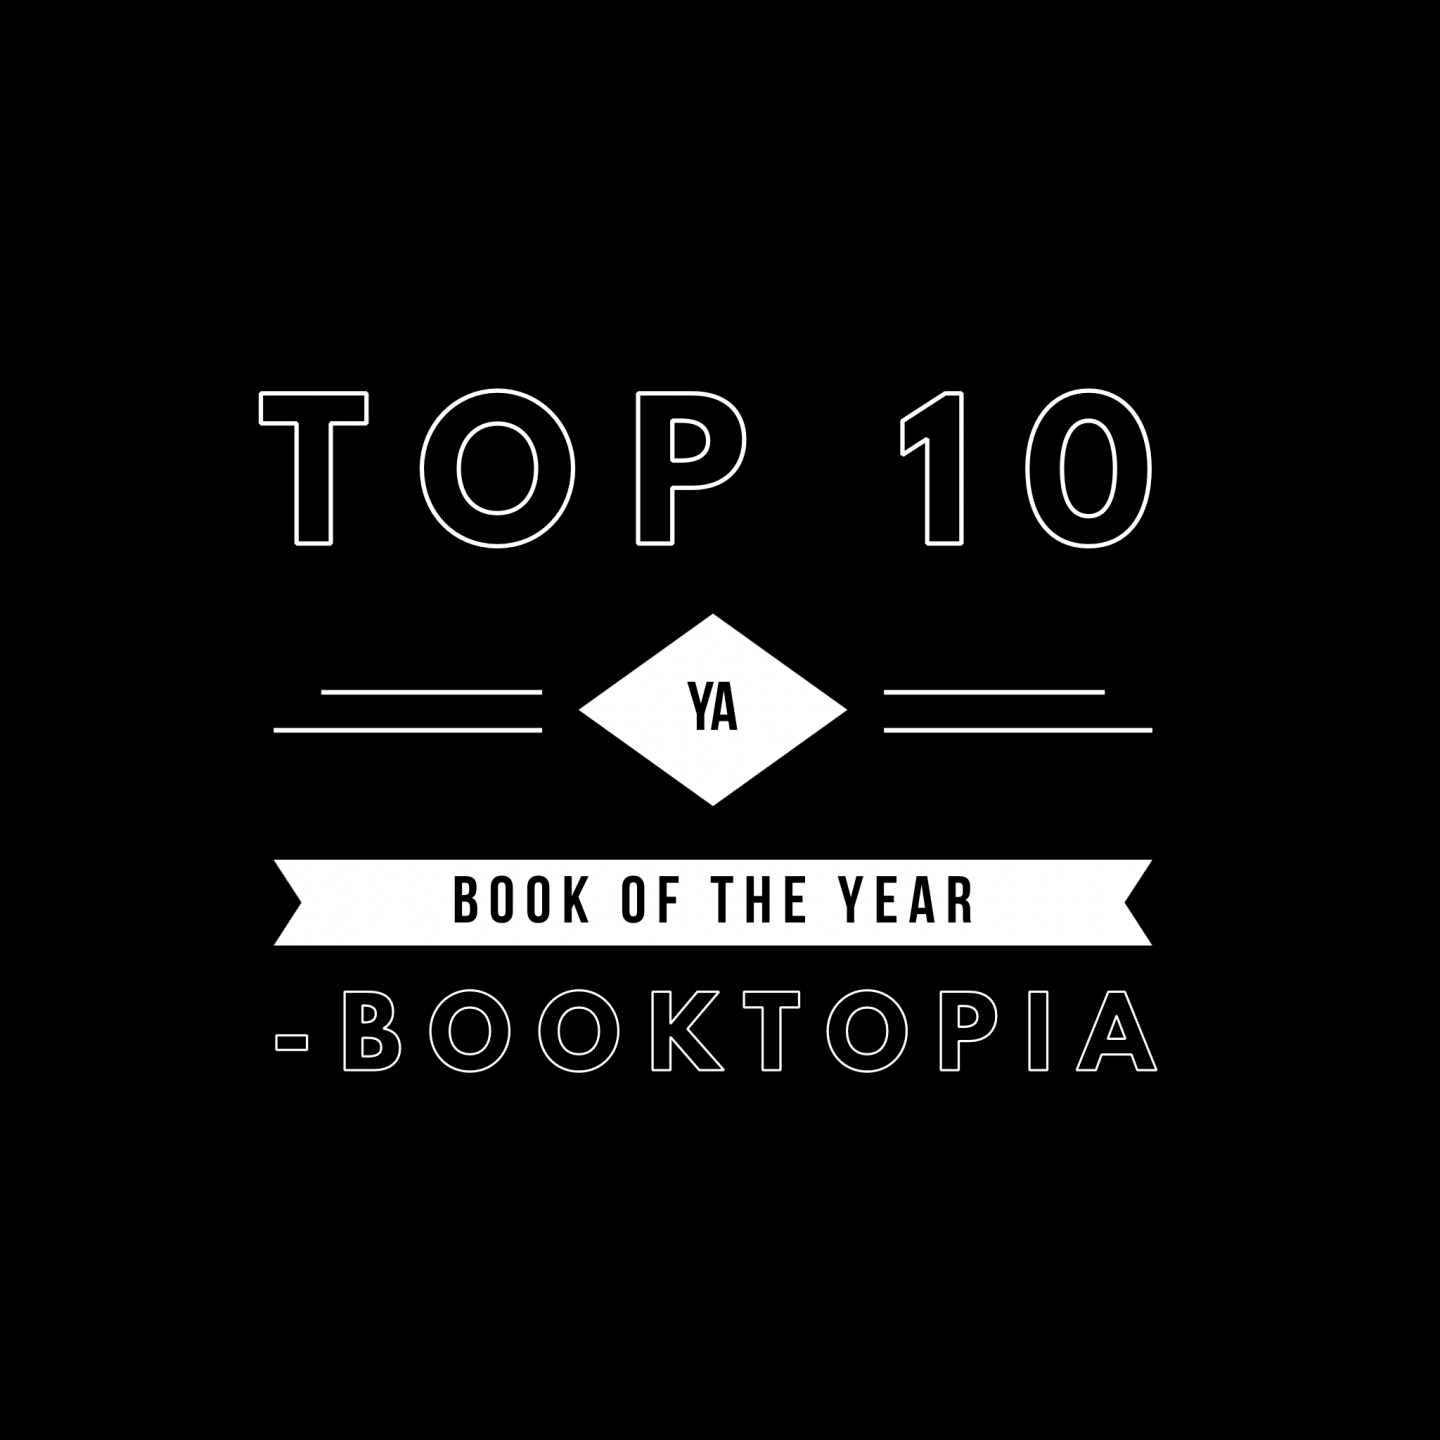 TWO WOLVES by author Tristan Bancks named in the TOP 10 YA Books of The Year by Booktopia